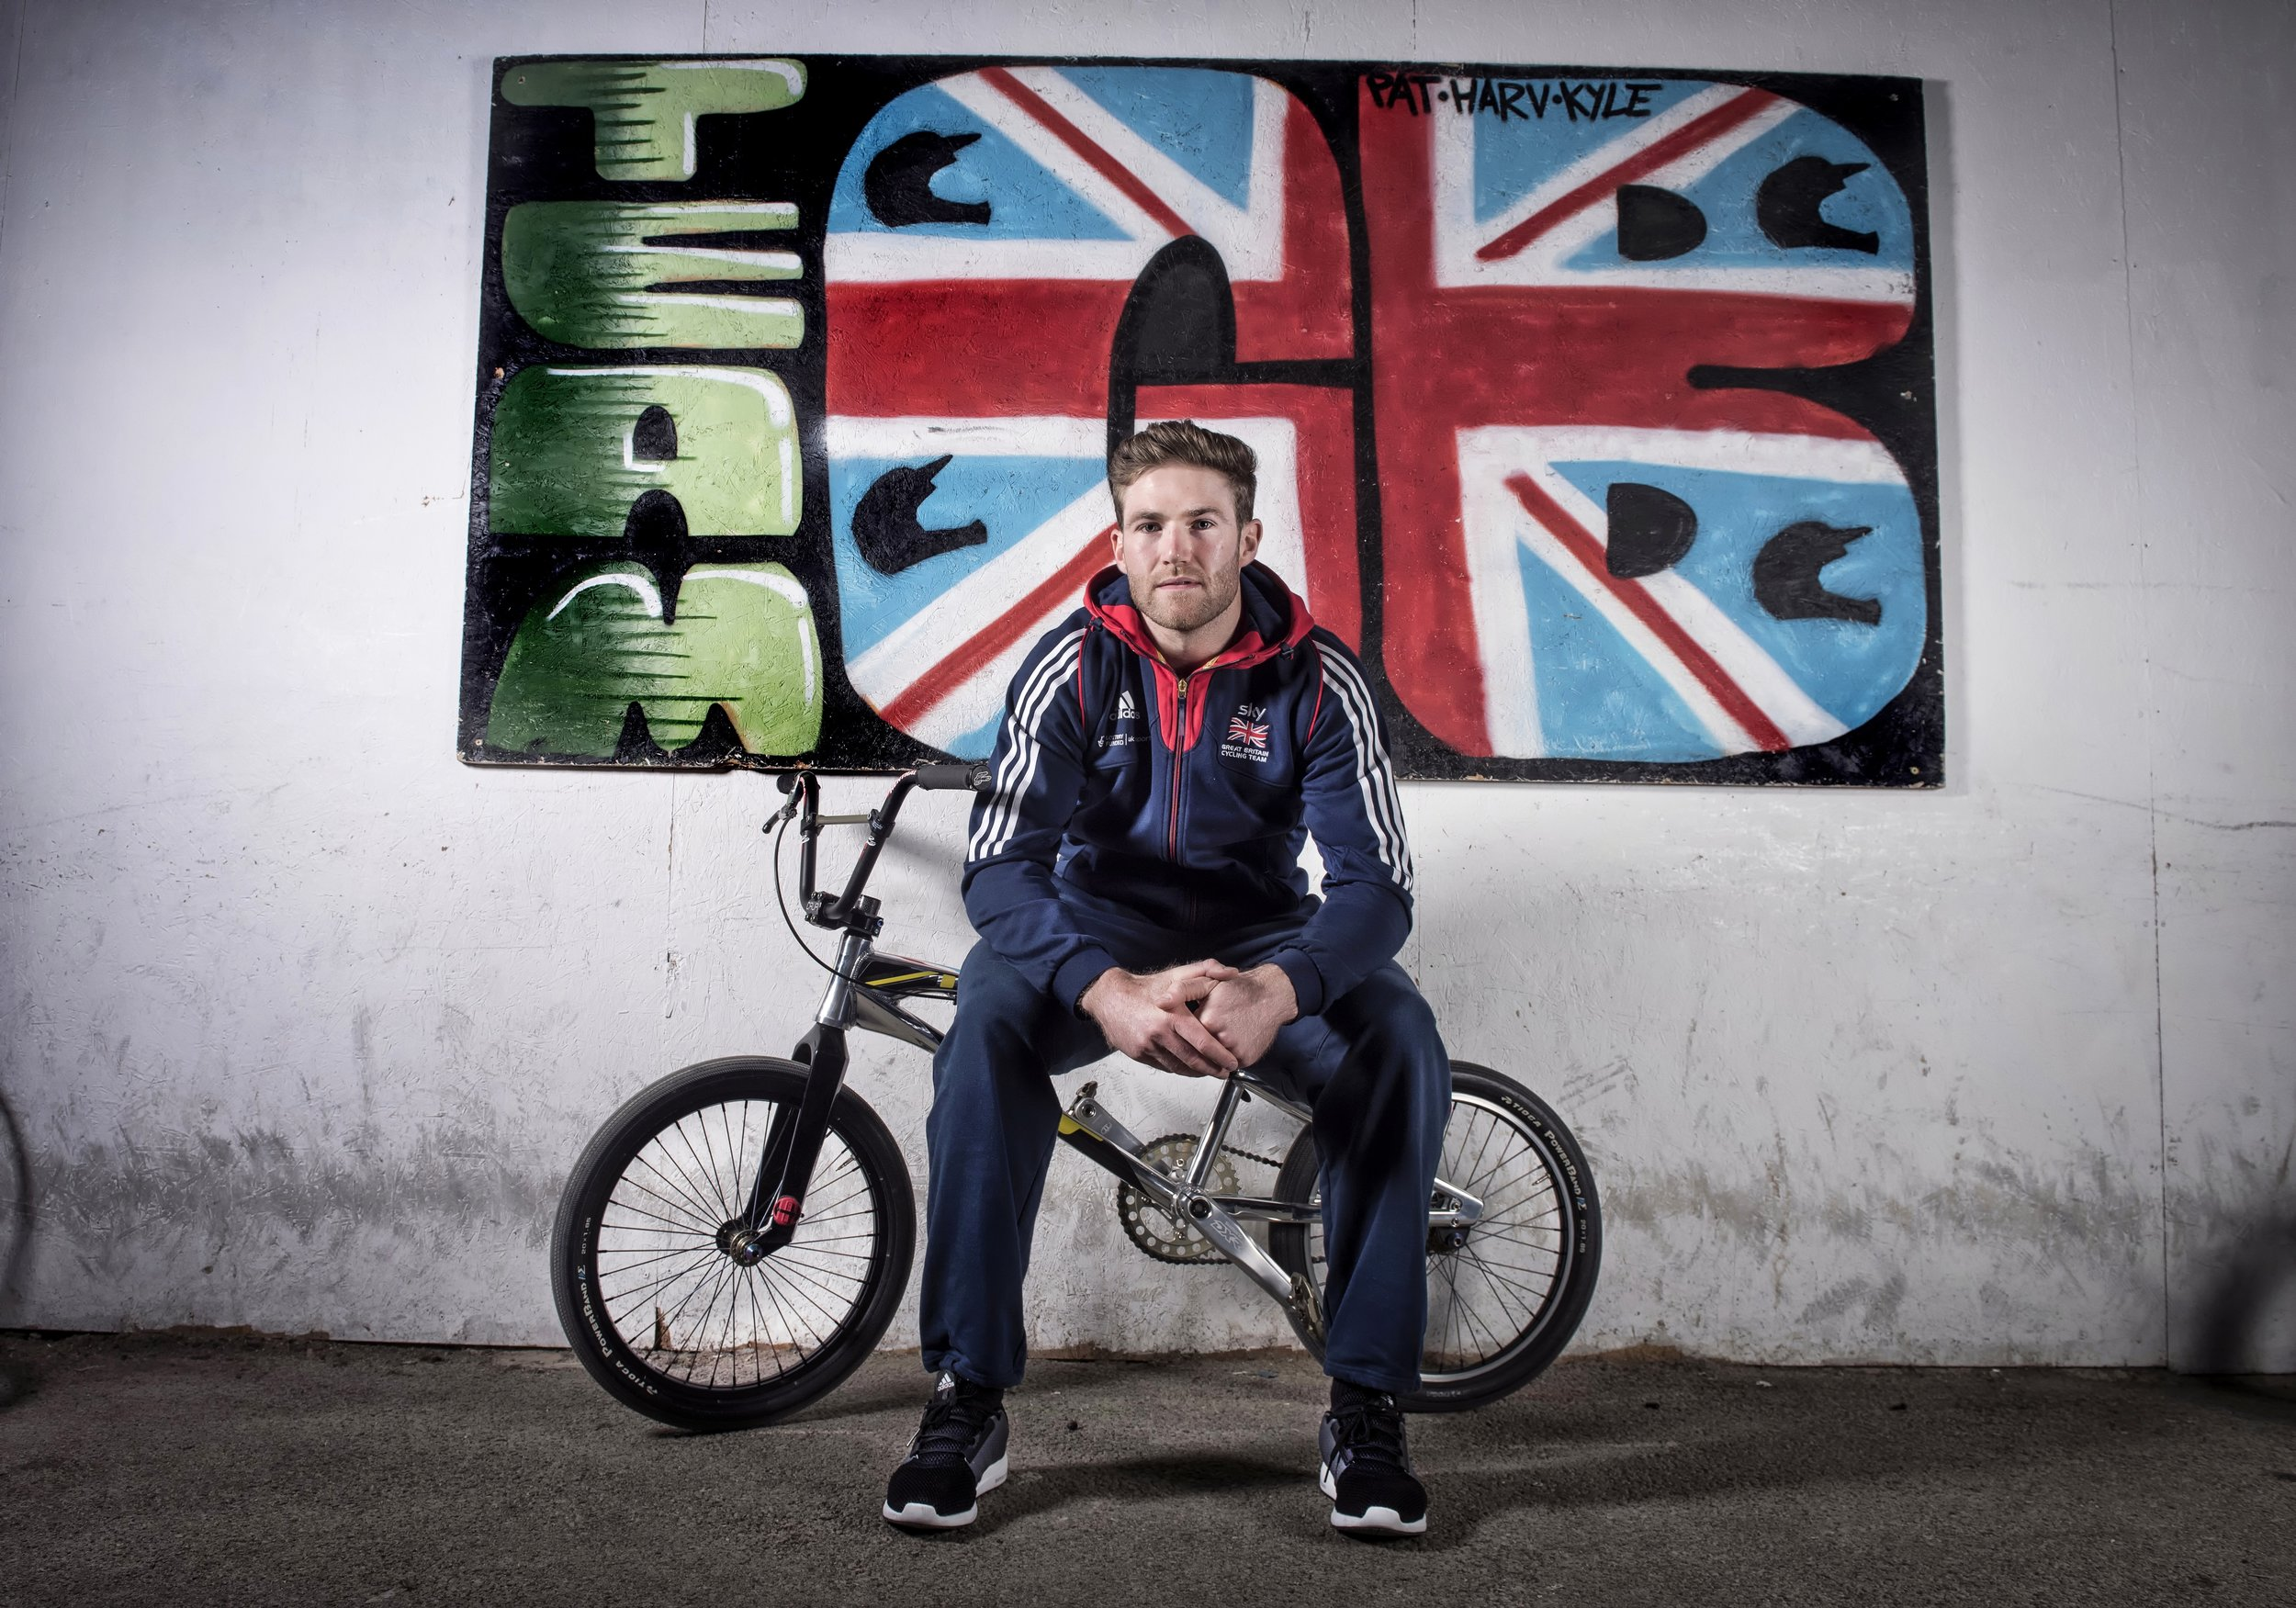 LIAM PHILIPS BMX RIDER PICTURED AT NATIONAL CYCLING CENTER IN MANCHESTER PHOTO CREDIT PAUL COOPER